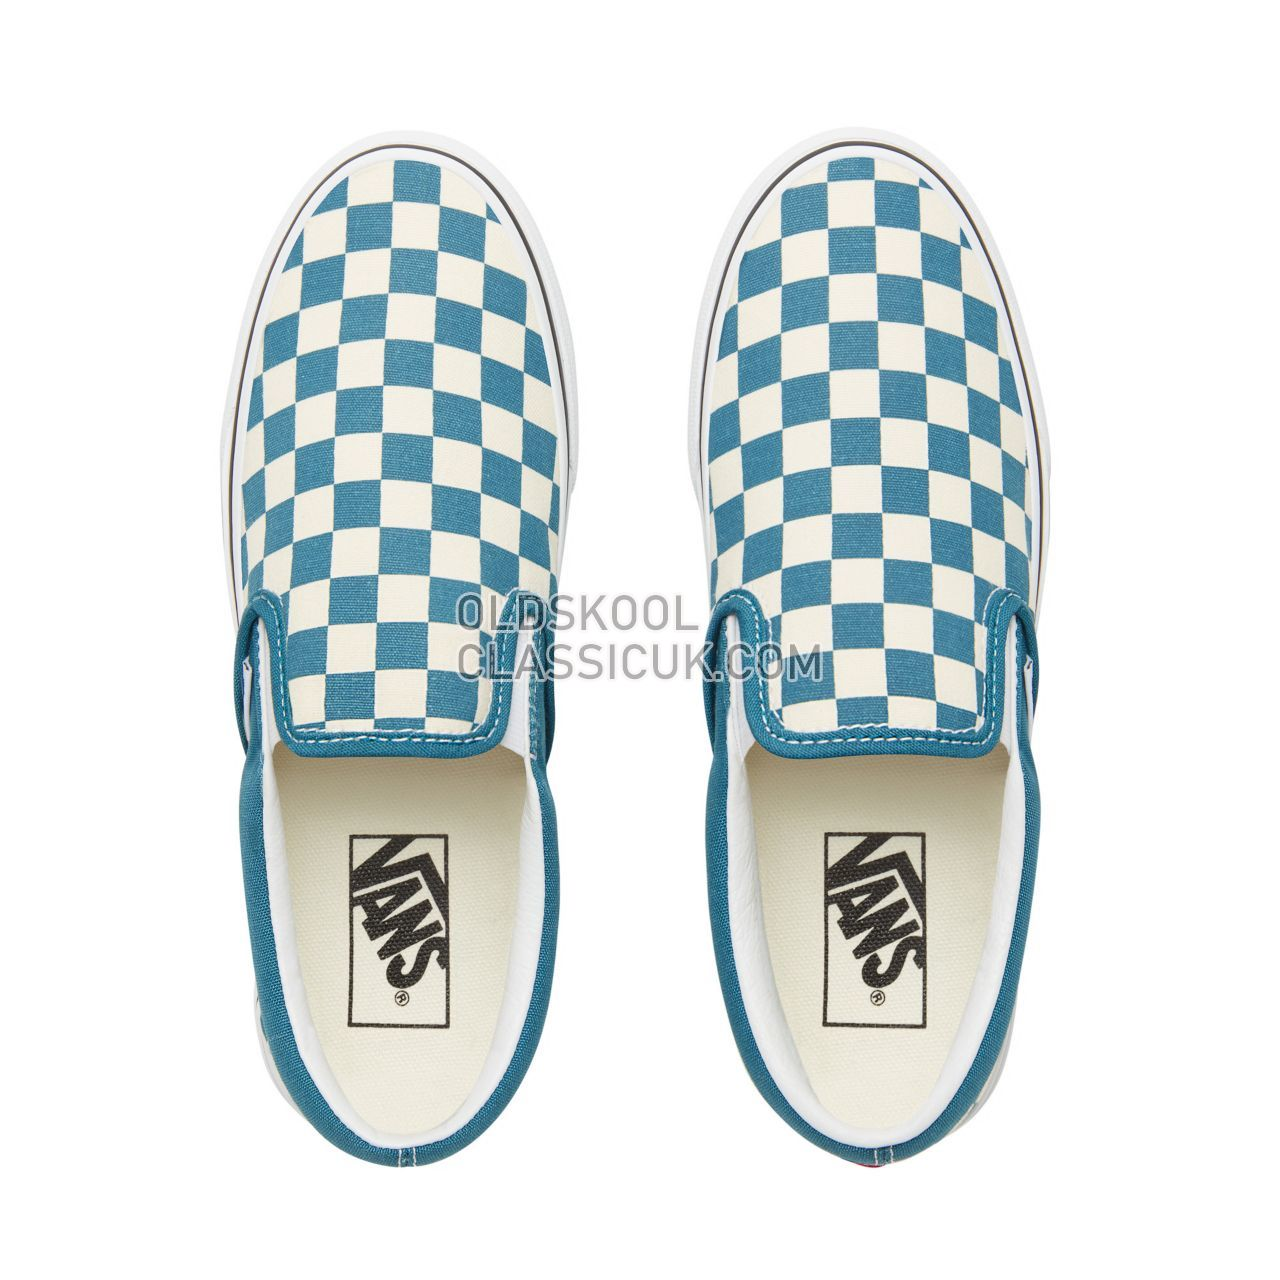 Vans Color Theory Checkerboard Classic Slip-On Sneakers (Unisex) Mens (Checkerboard) Corsair/True White VA38F7U78 Shoes